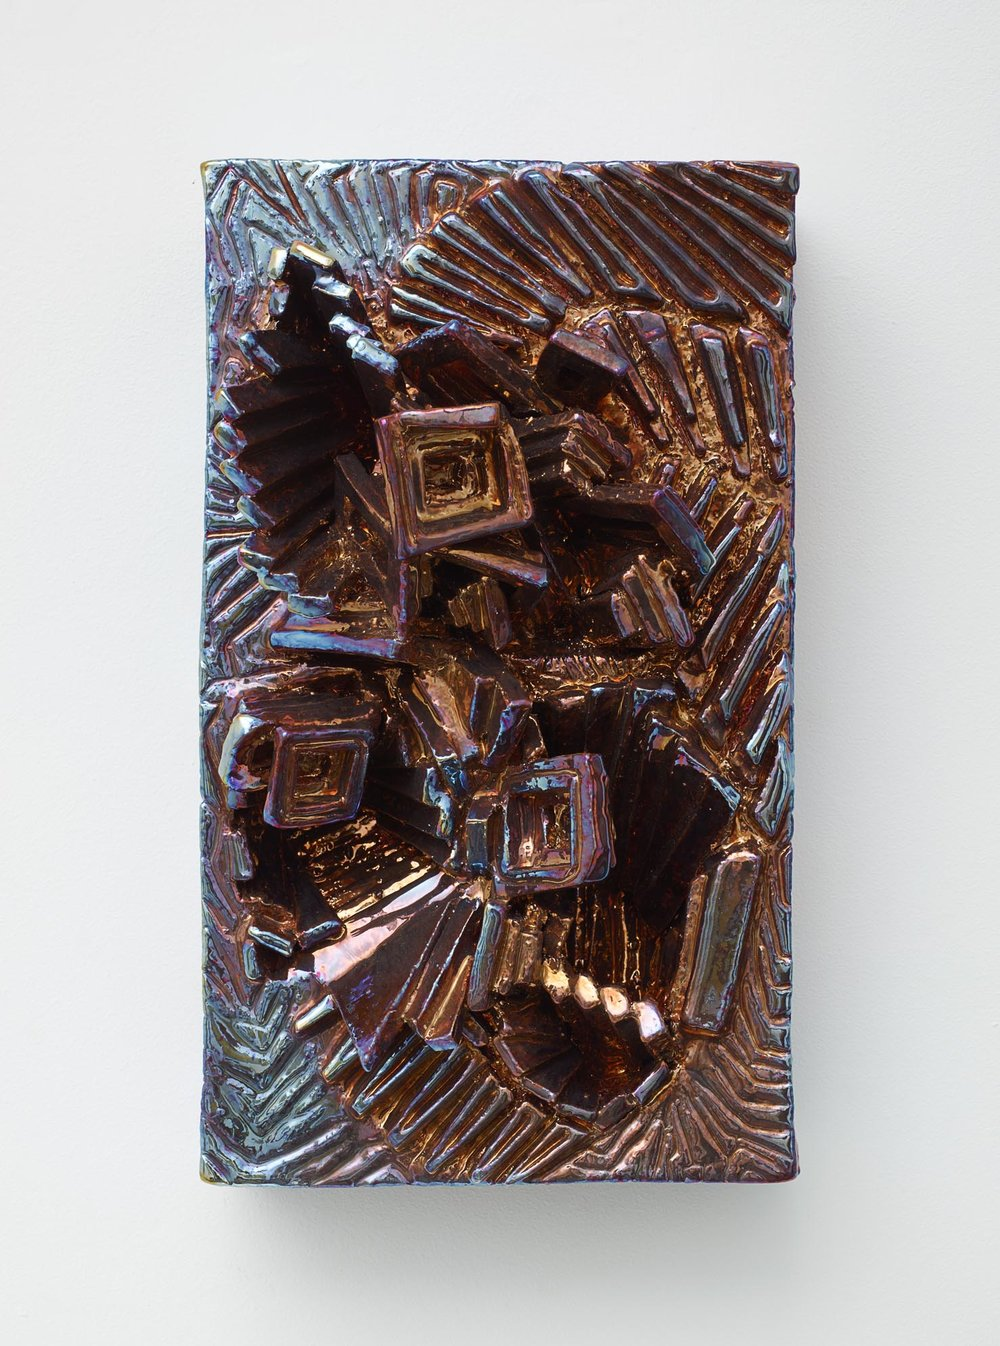 Julia Kunin,   Copper and Blue Portrait , 2014, Ceramic, 15 x 9 x 6 inches